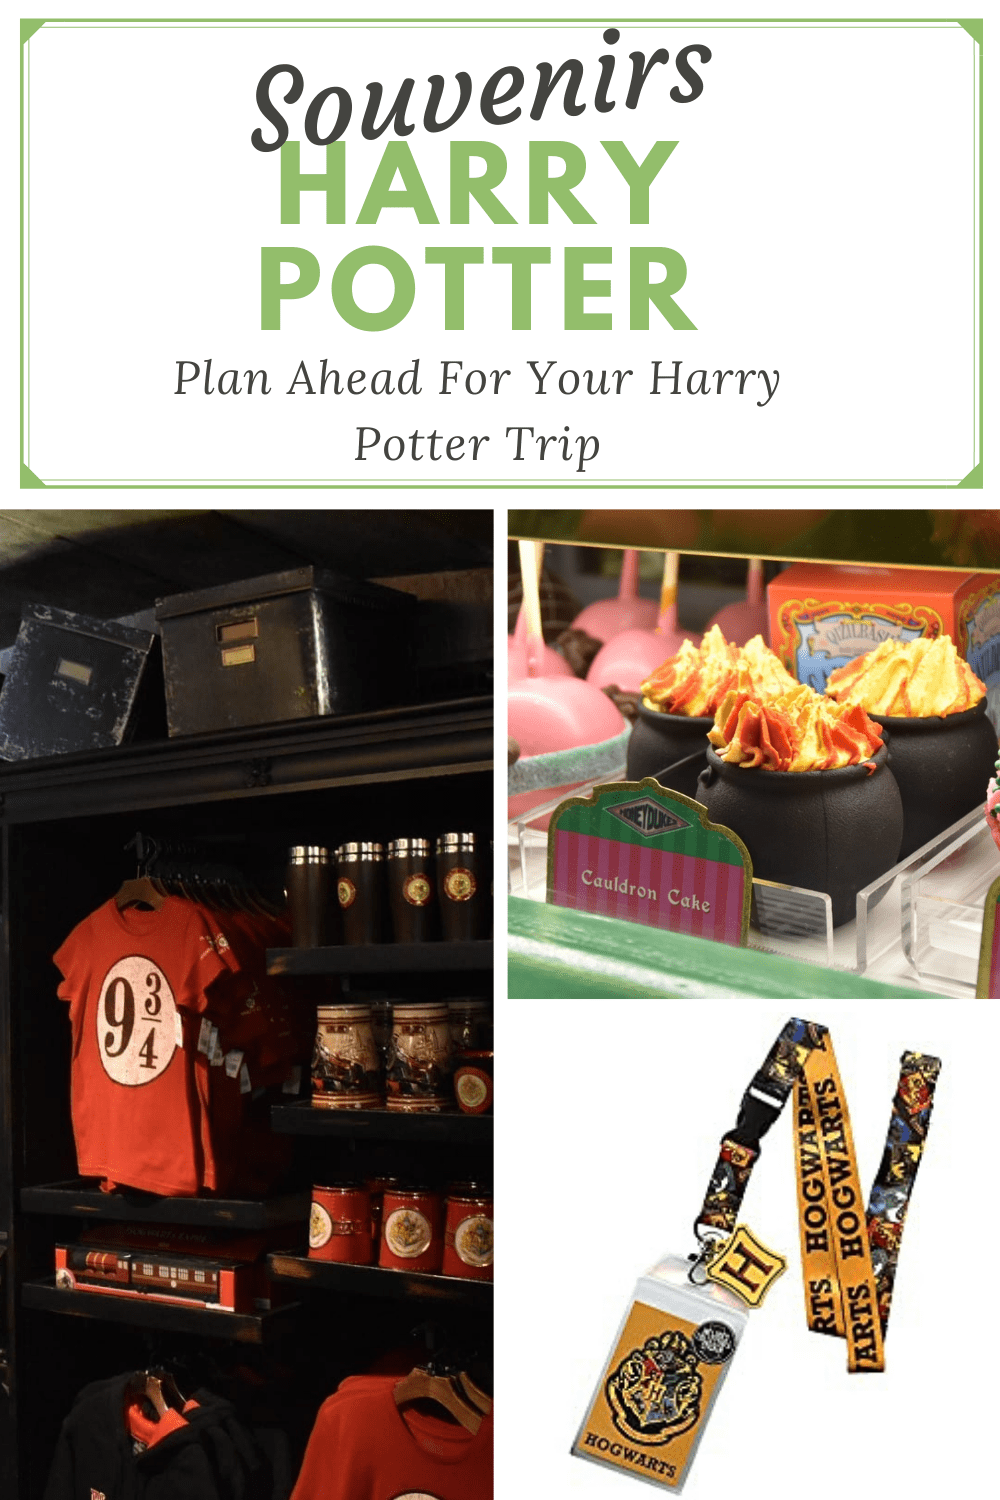 Harry Potter Souvenirs Pin for Pinterest